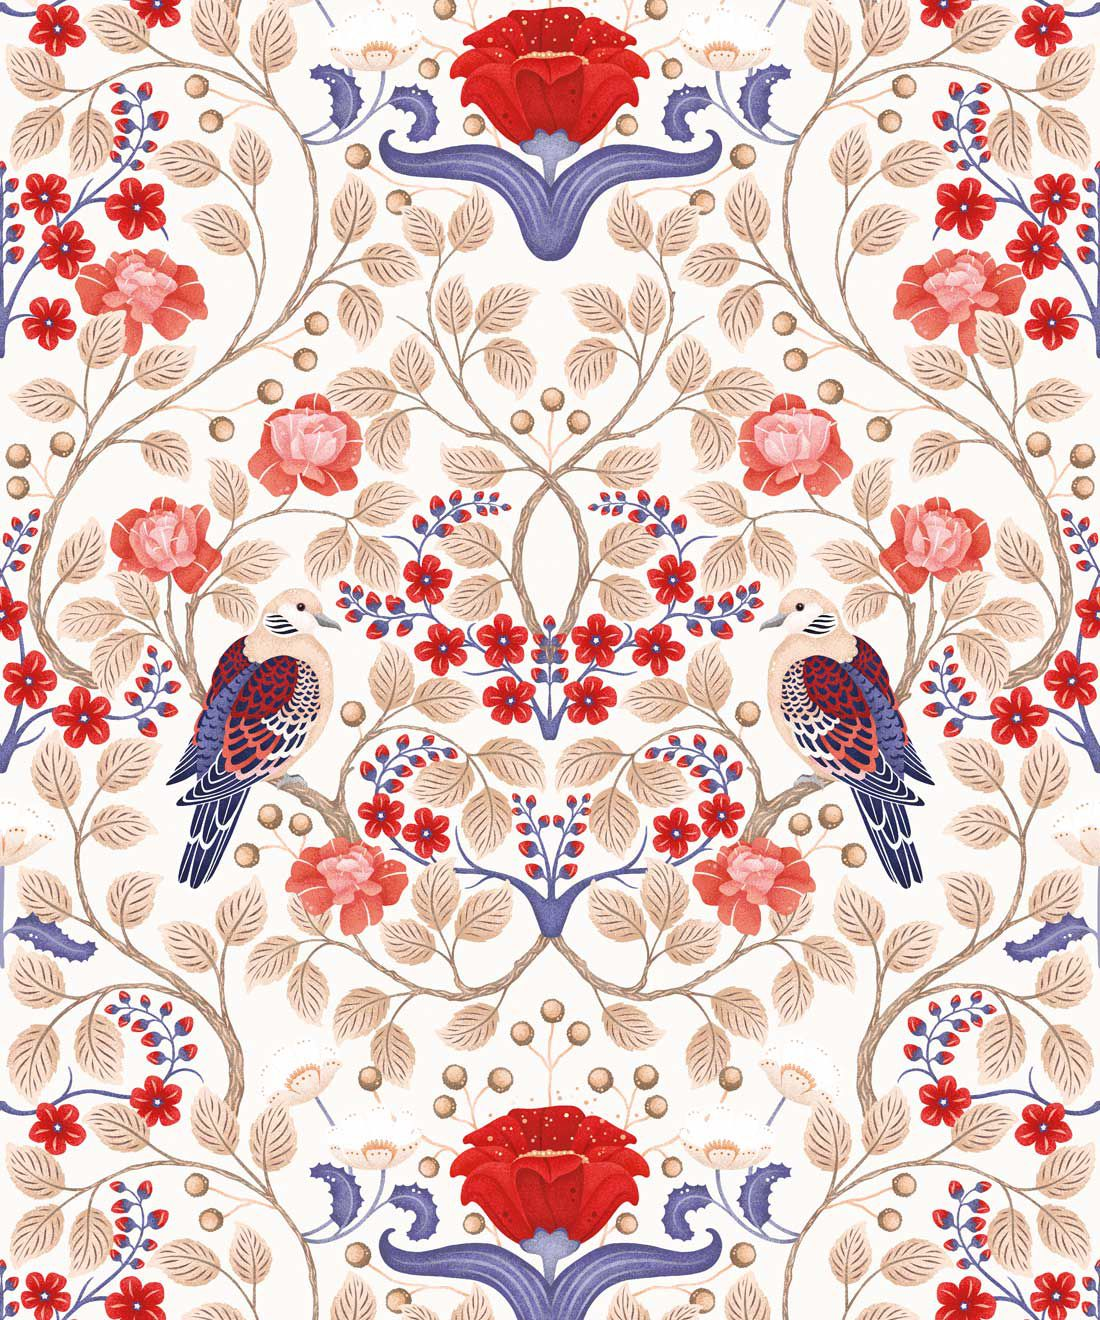 Turtle Doves Wallpaper • Bold Colorful Bird Wallpaper • Creme •Swatch